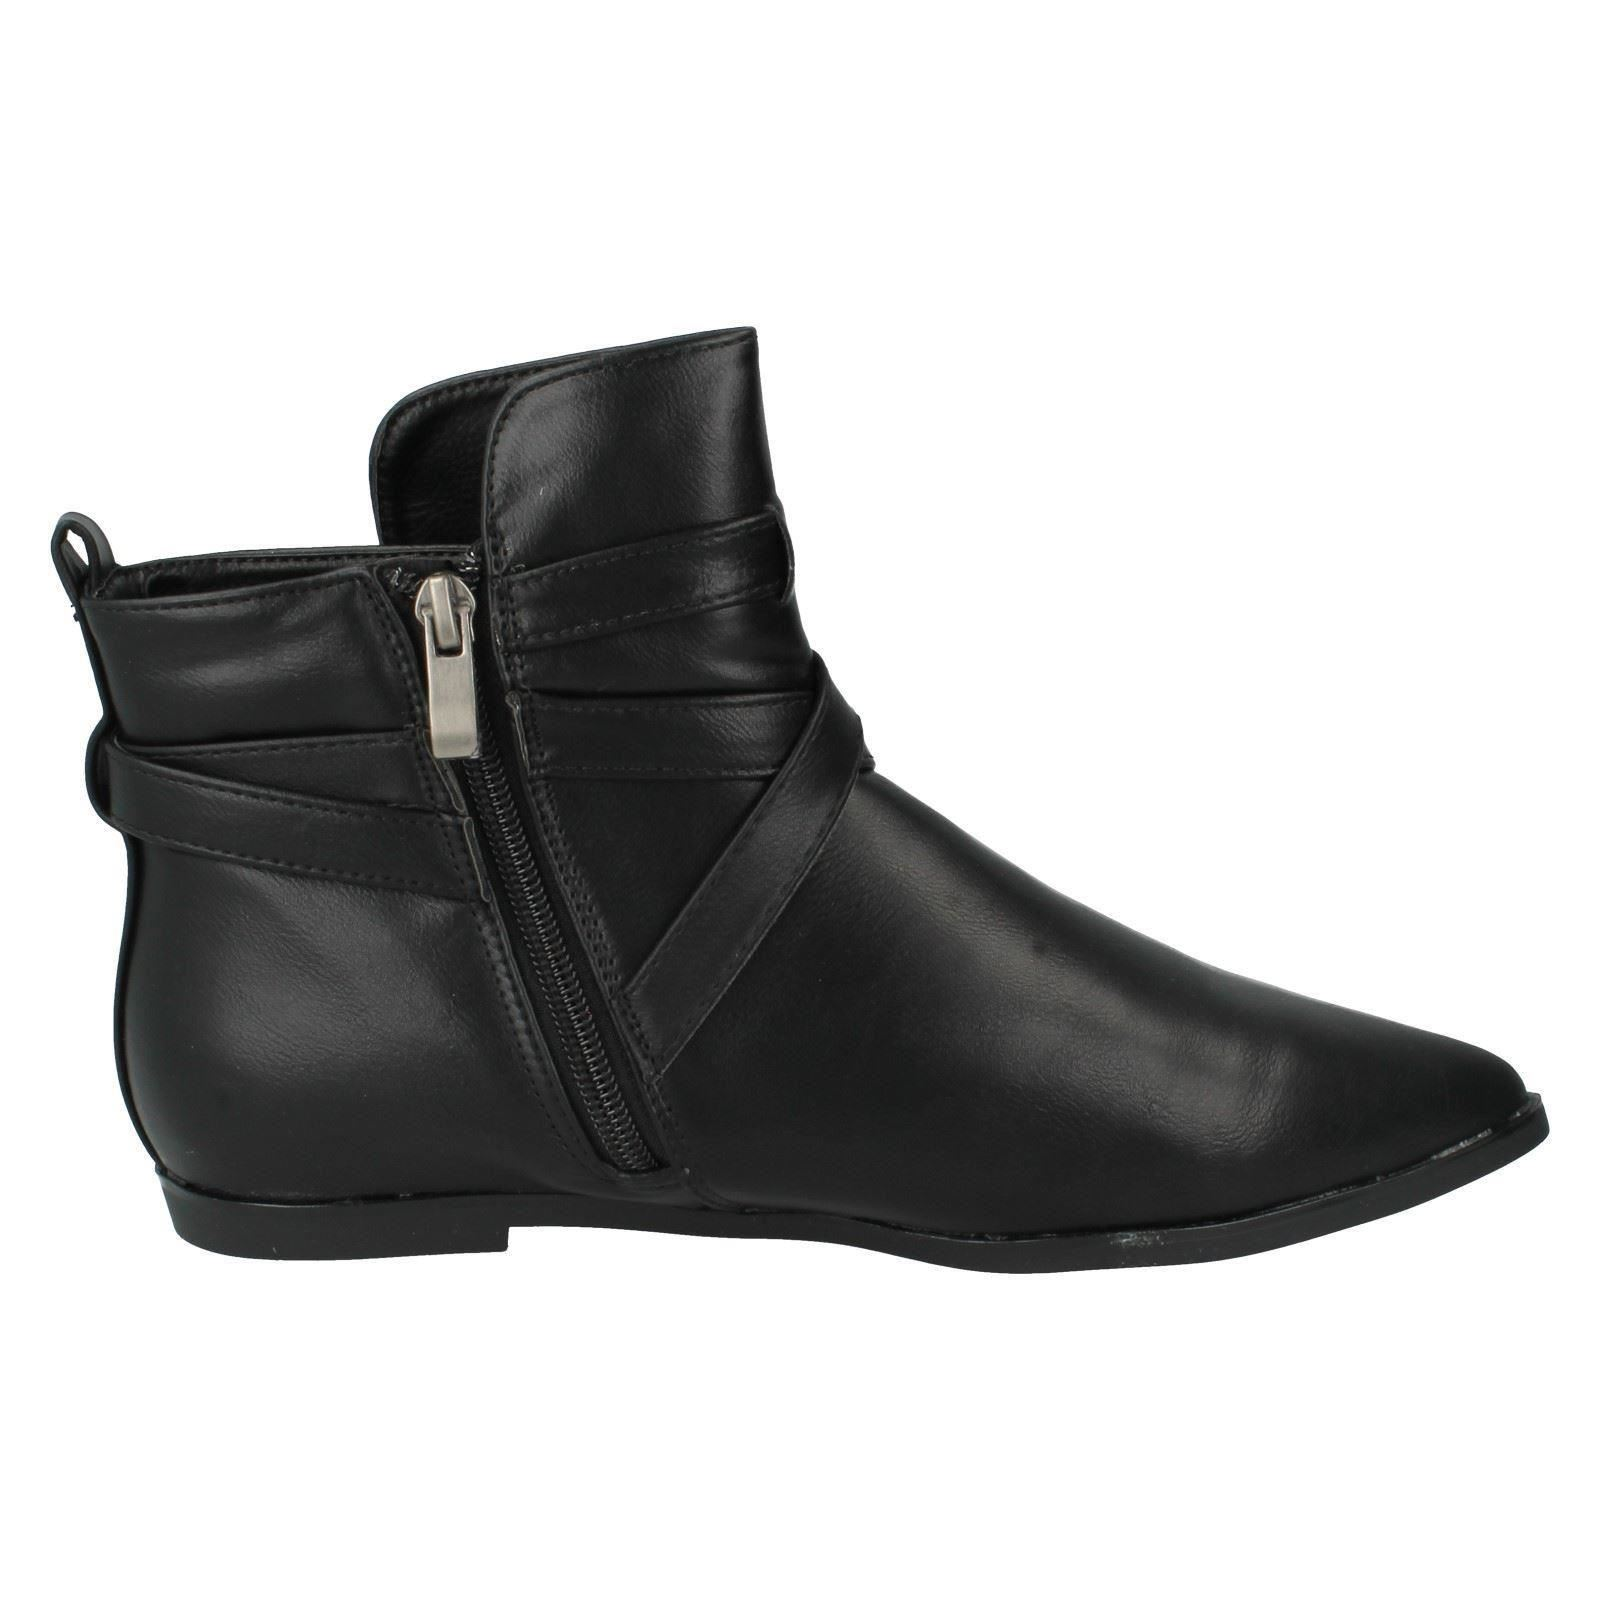 Ladies-Spot-On-Ankle-Boots-Style-F4364